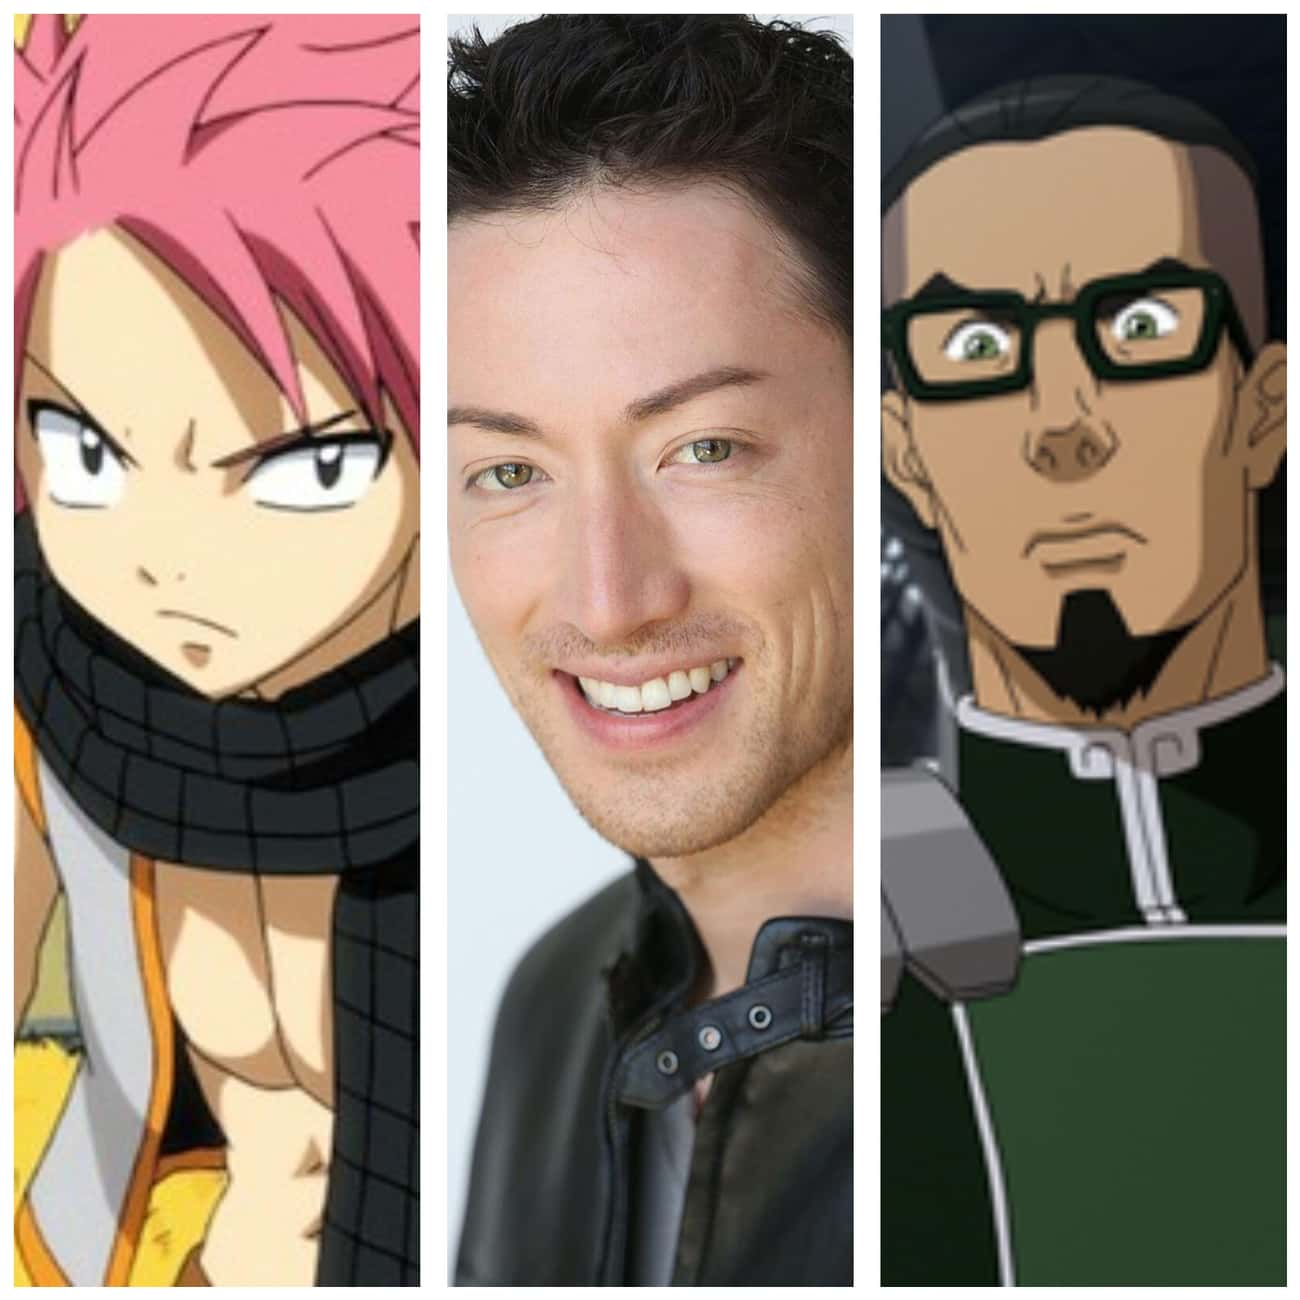 Todd Haberkorn From 'Fairy Tai is listed (or ranked) 1 on the list 15 Times Anime Voice Actors Appeared In Western Cartoons